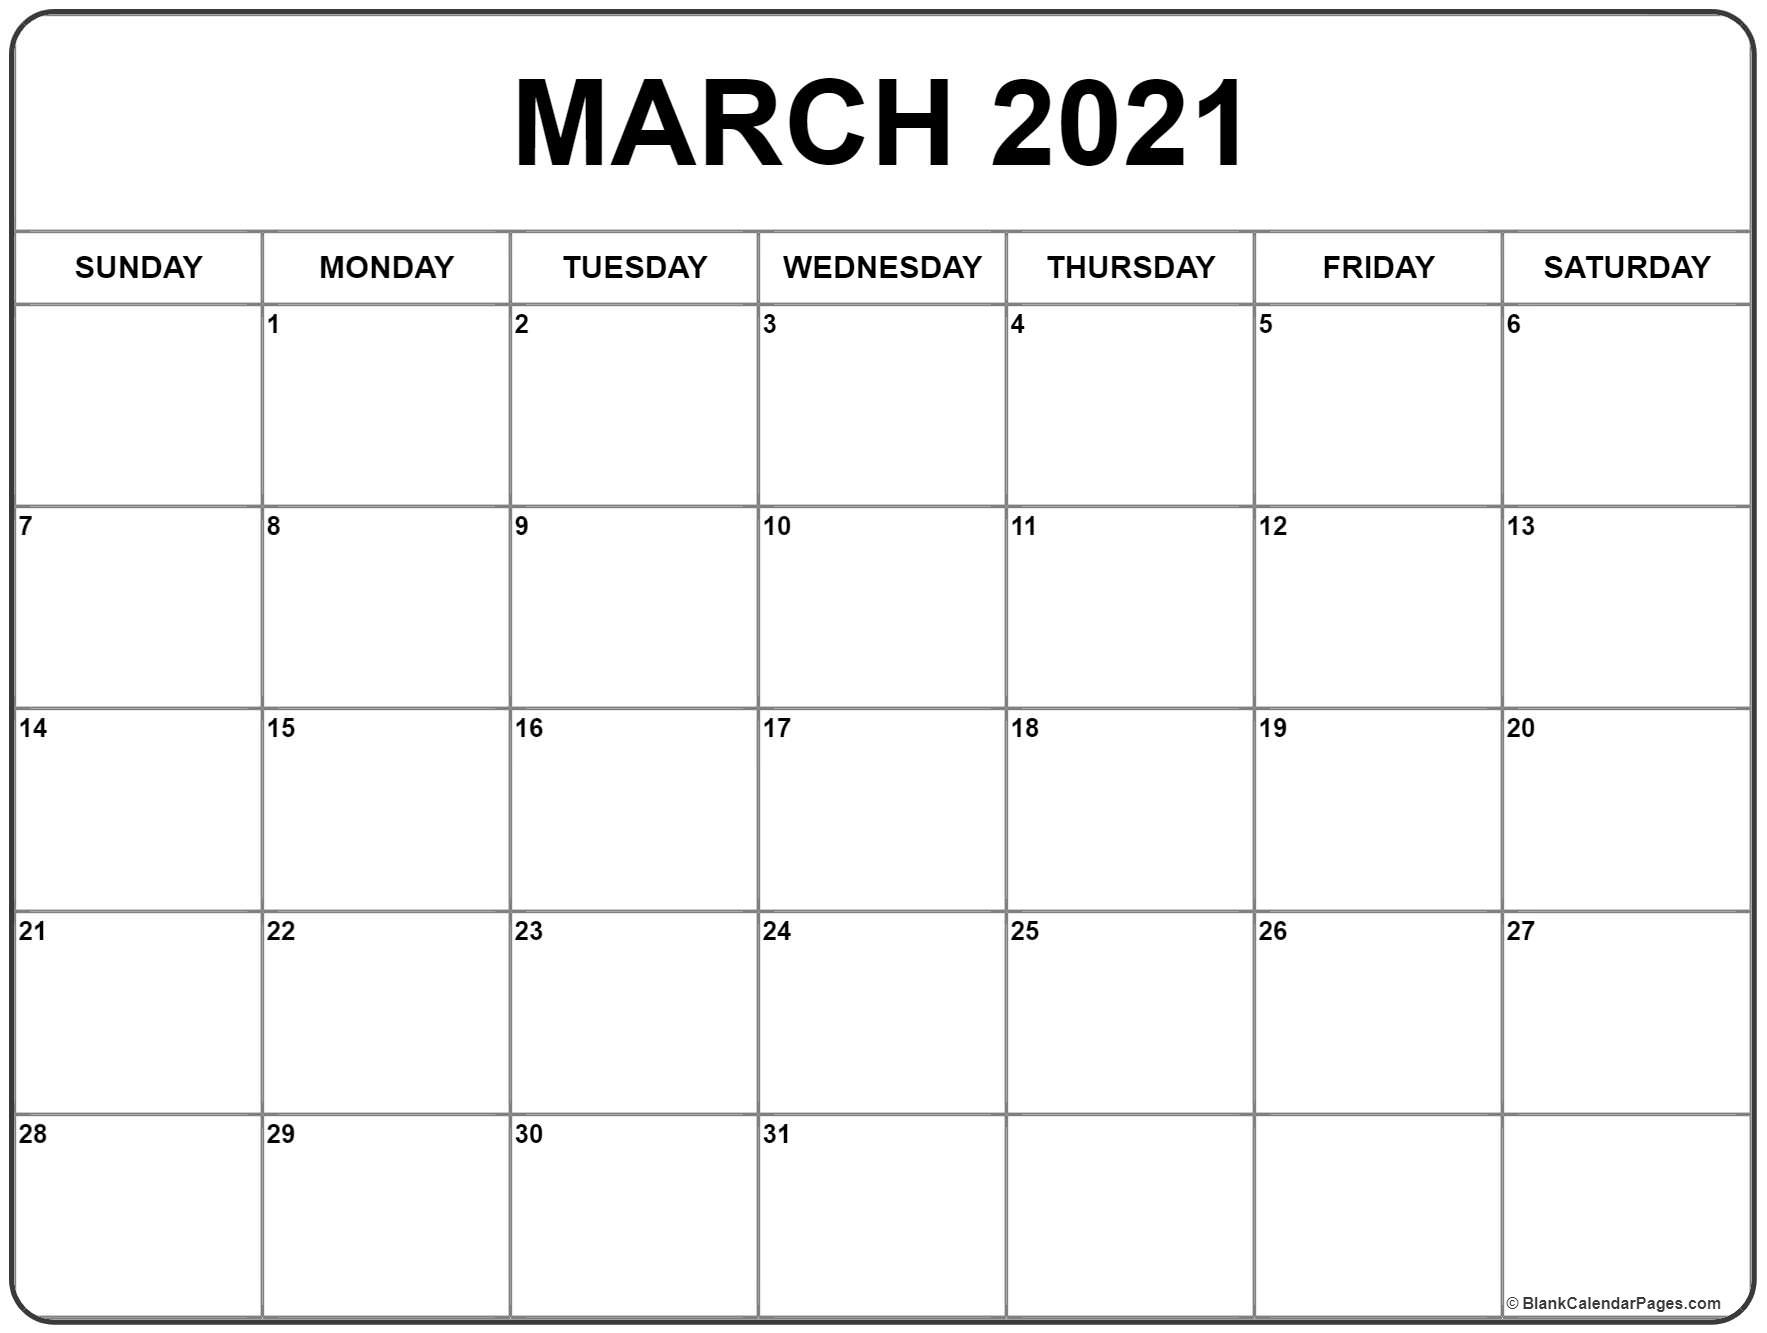 March 2021 Calendar | Free Printable Monthly Calendars  Free Printable Monthly Calendar March 2021